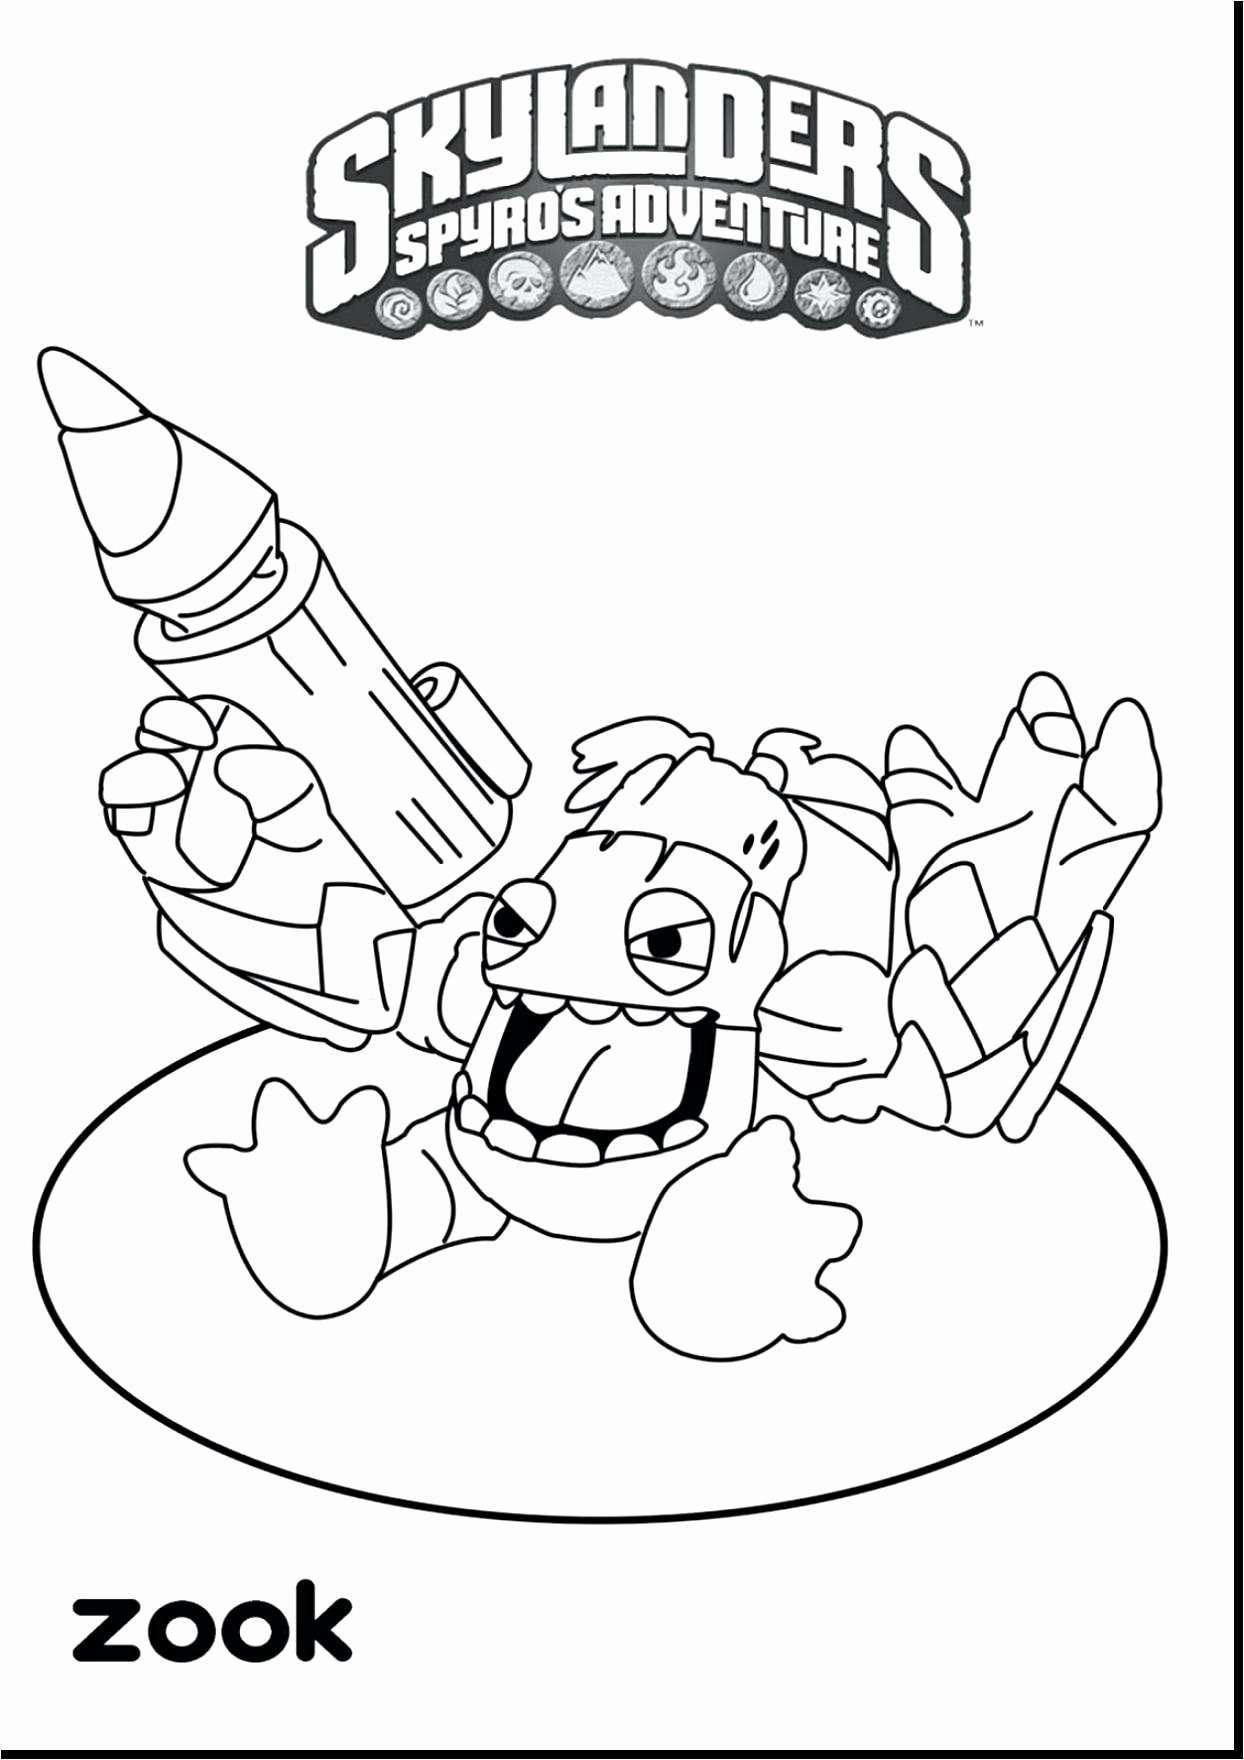 Herbs Coloring Pages  Gallery 3g - Free For kids